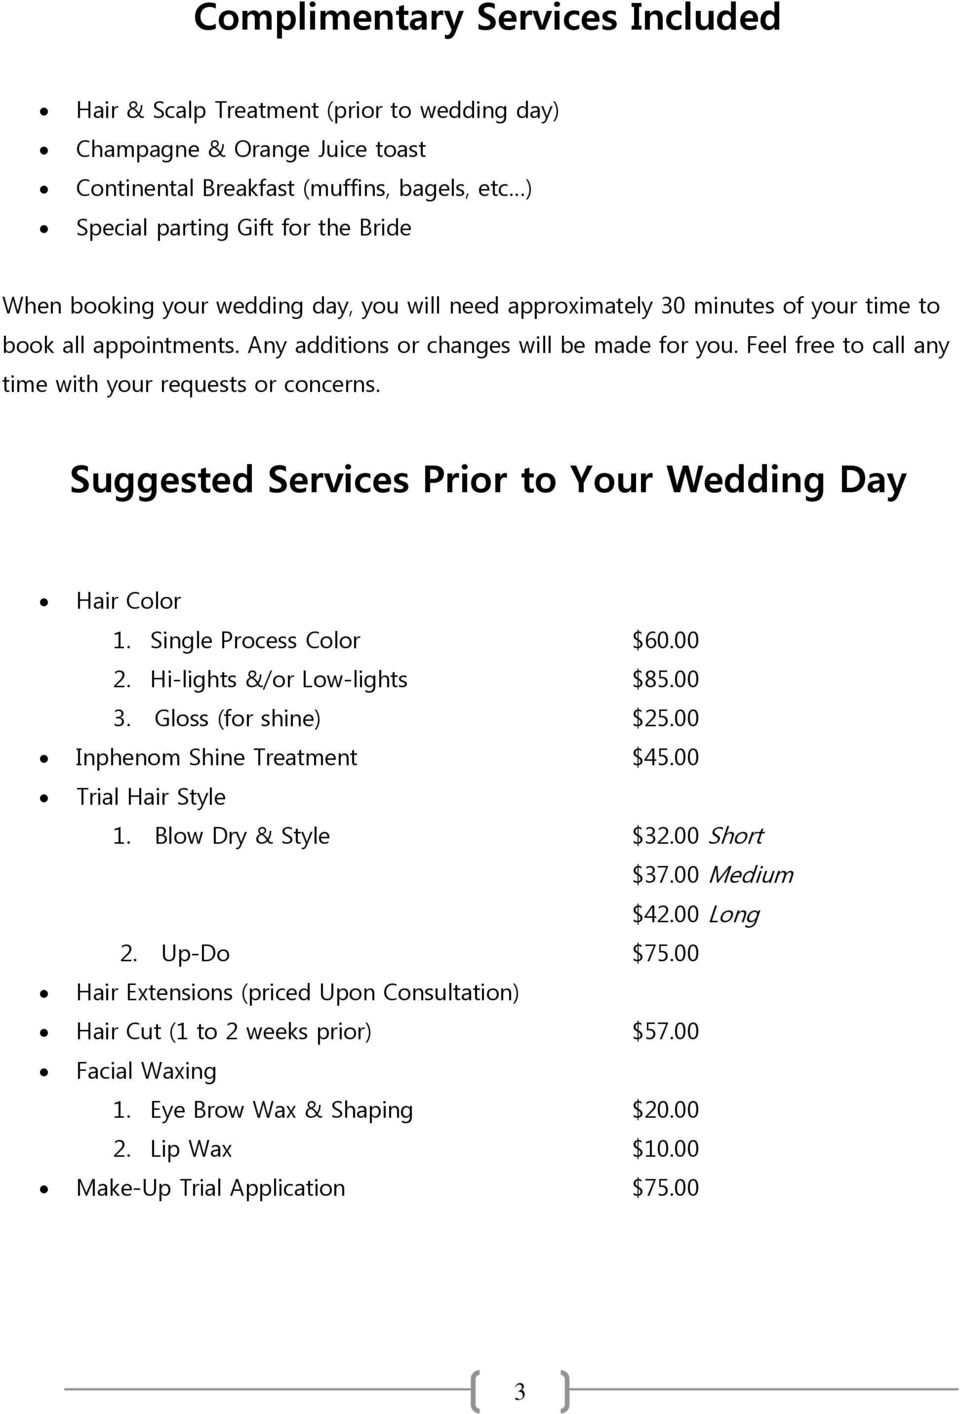 Feel free to call any time with your requests or concerns. Suggested Services Prior to Your Wedding Day Hair Color 1. Single Process Color $60.00 2. Hi-lights &/or Low-lights $85.00 3.